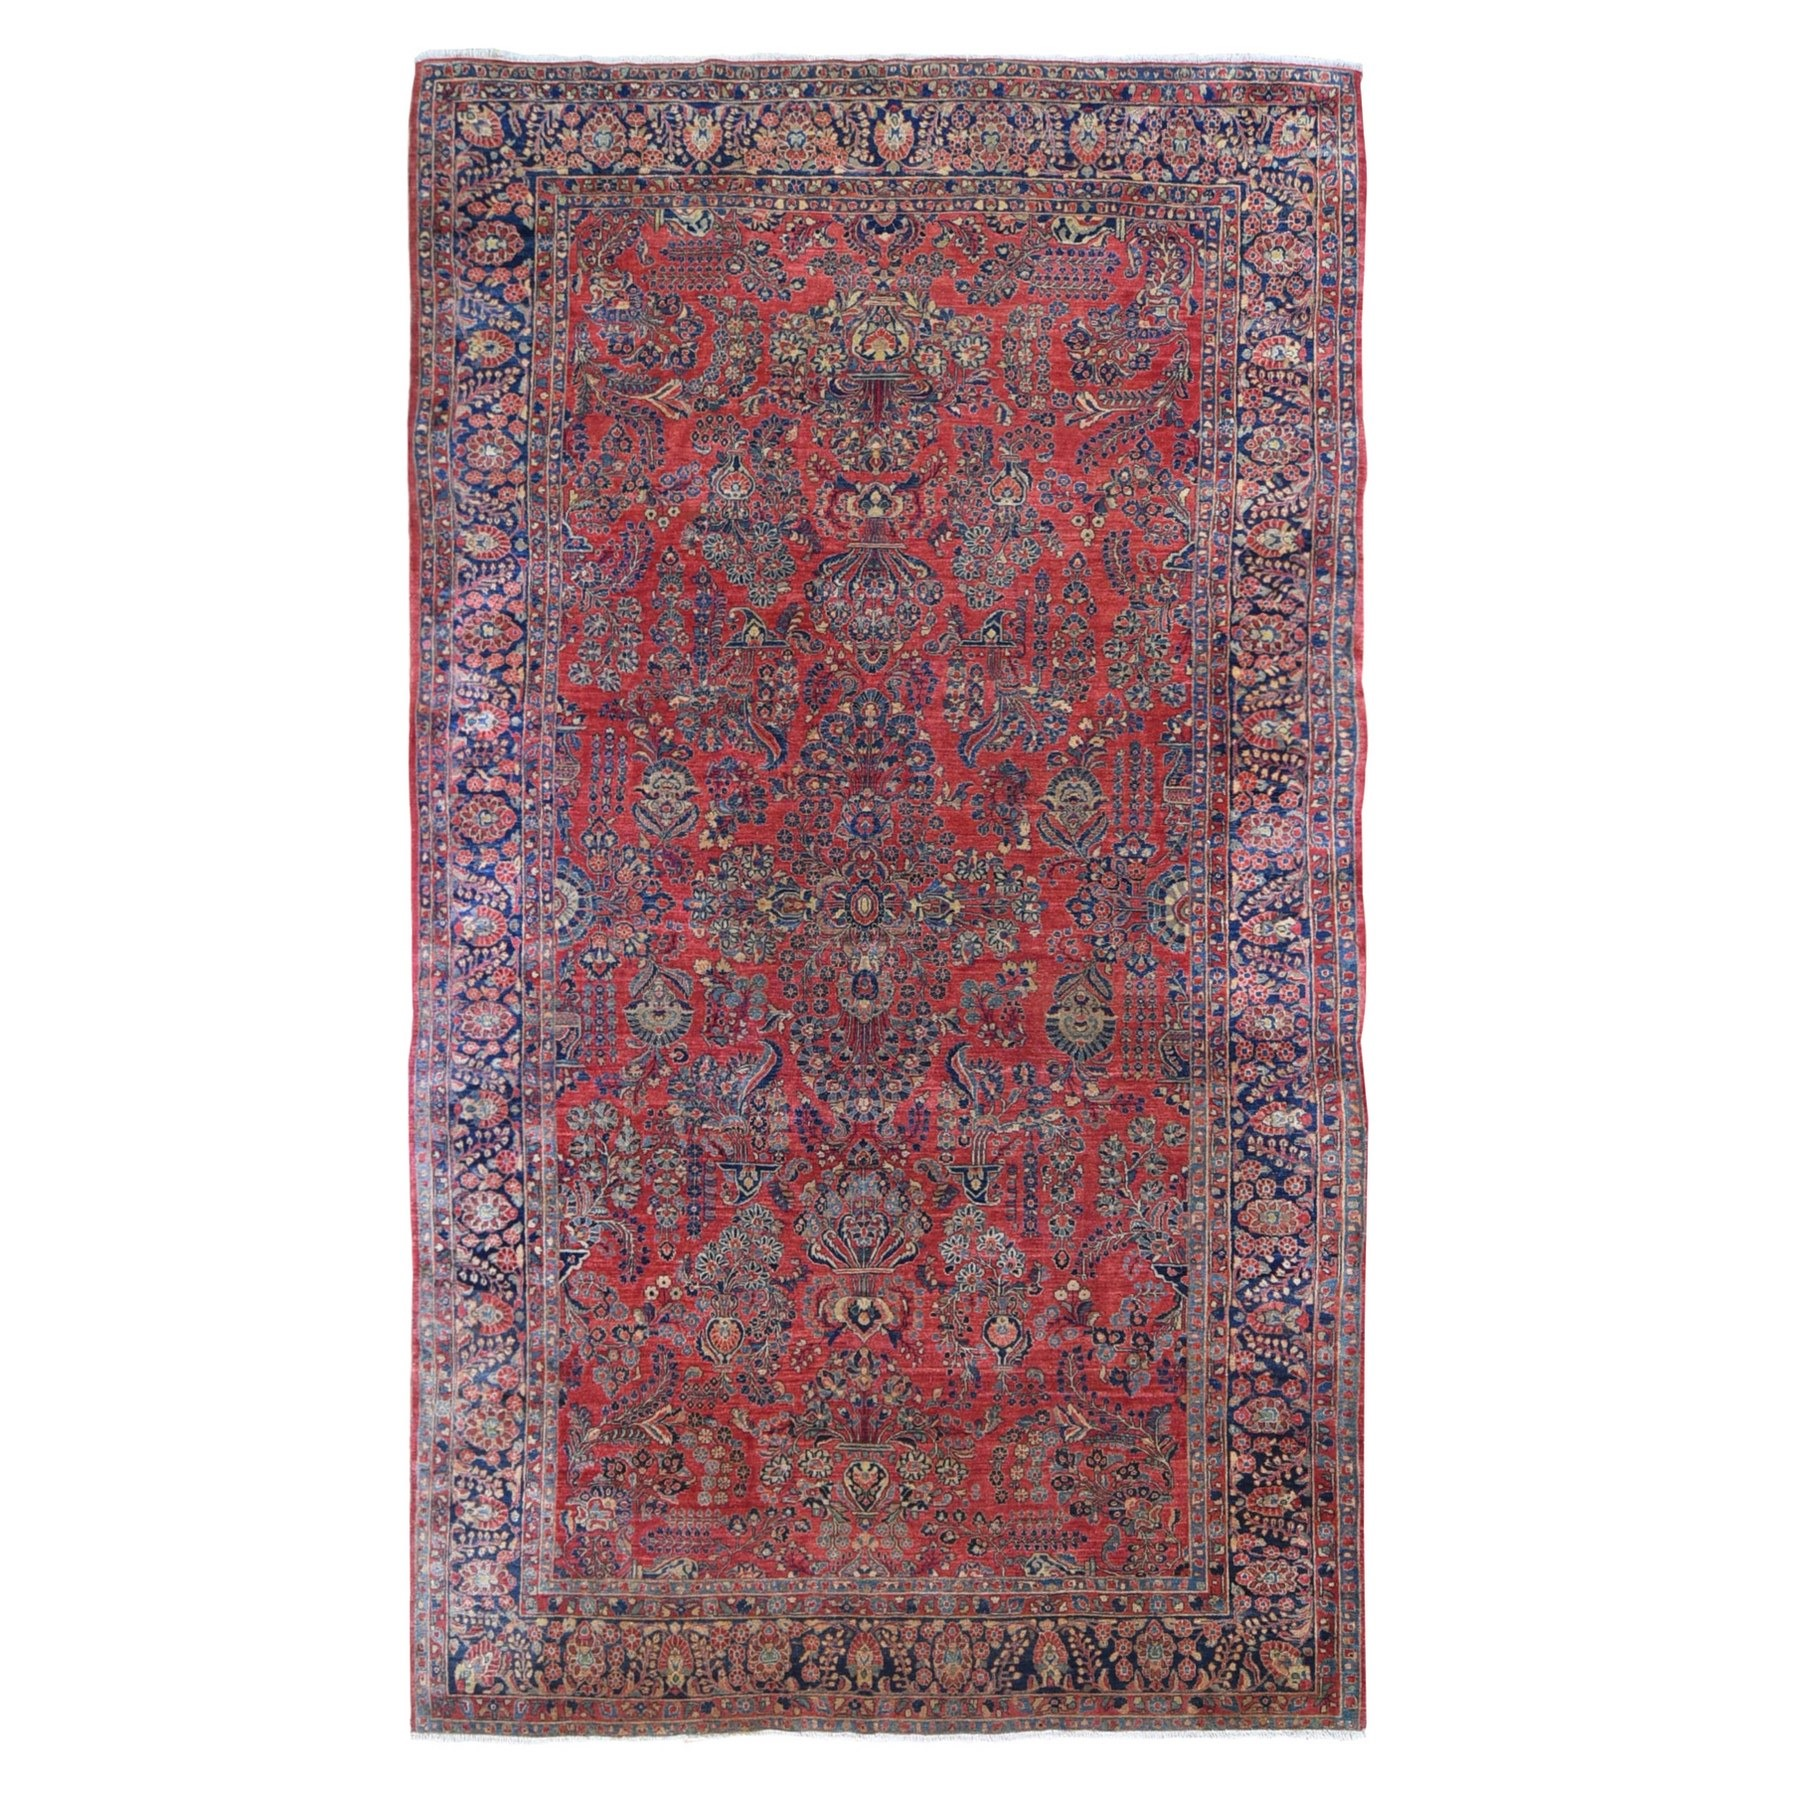 Antique Collection Hand Knotted Red Rug No: 1132584